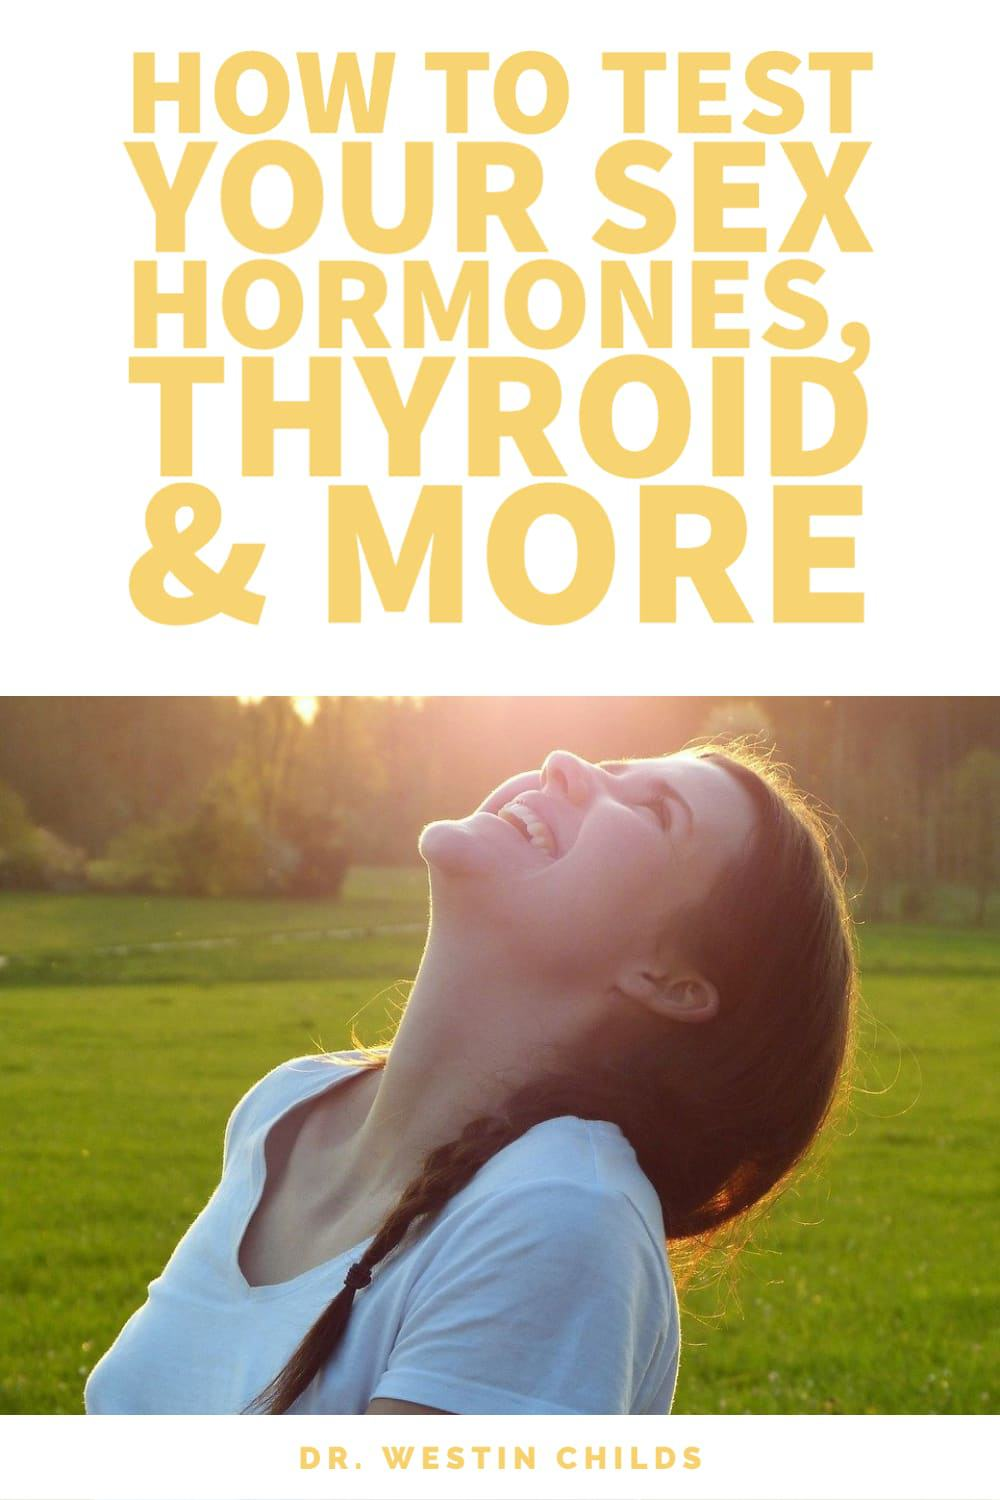 how to test your sex hormones, thyroid and more